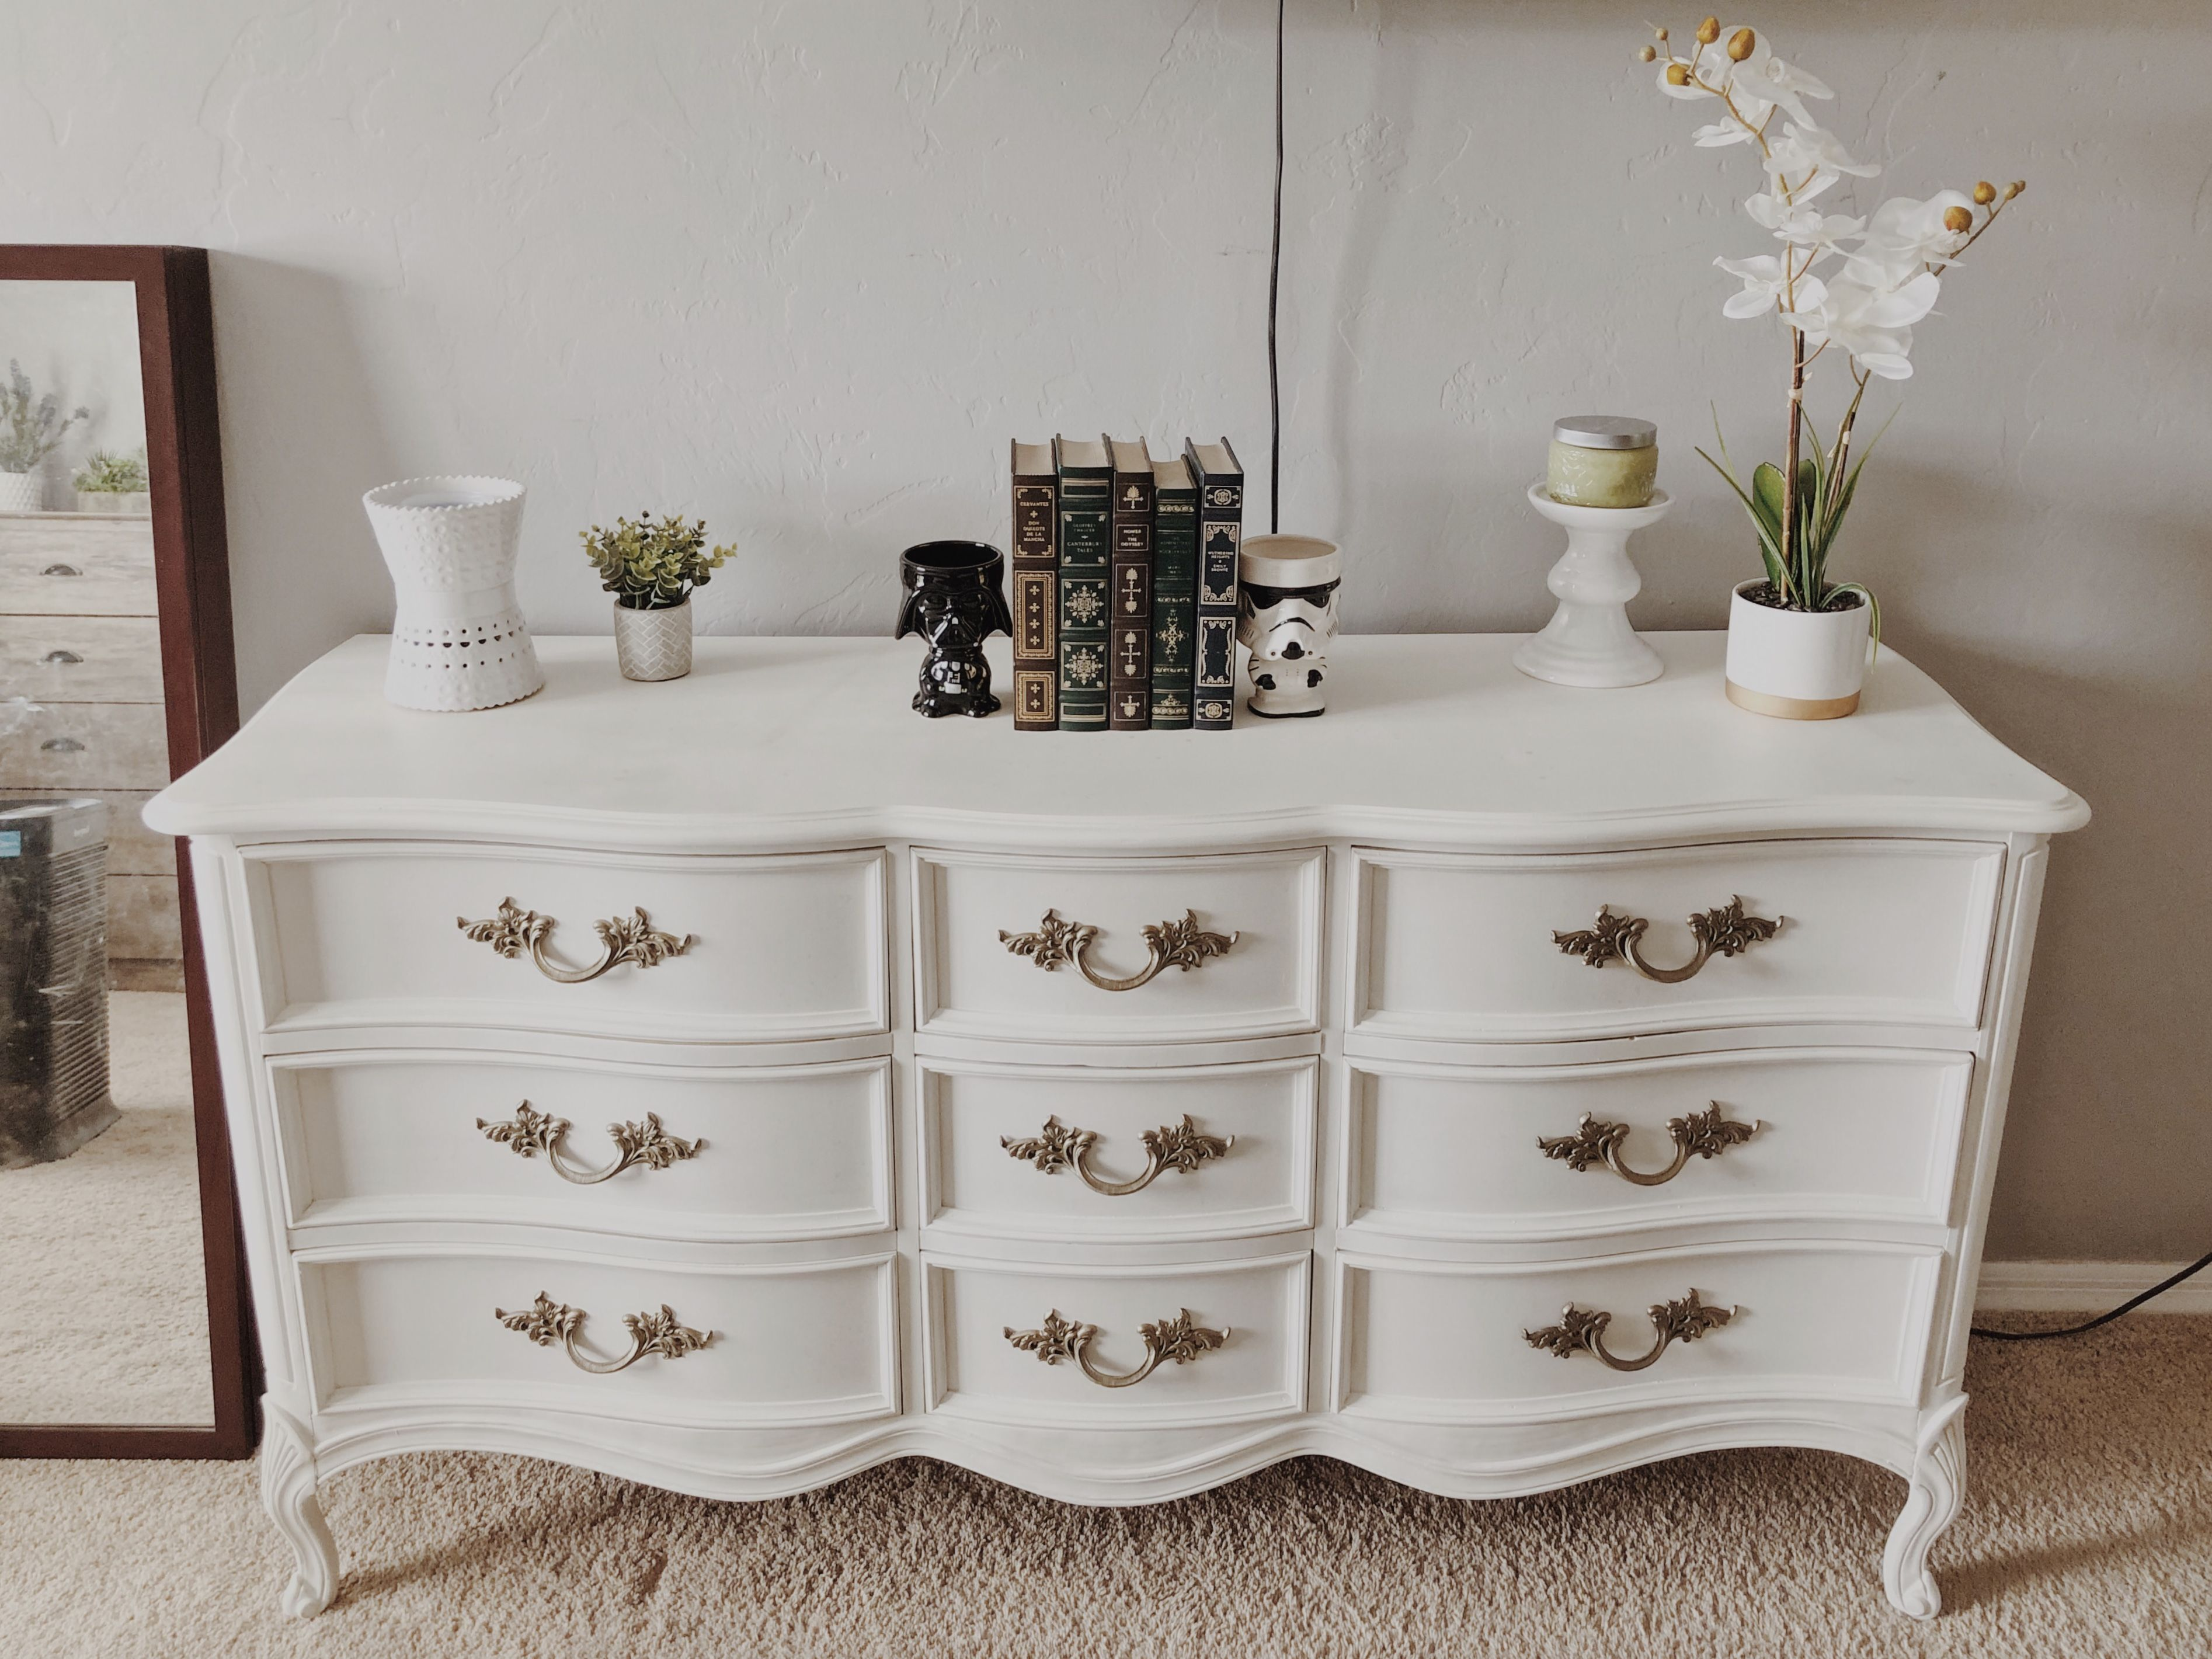 DIY makeover on an antique French Provincial dresser using